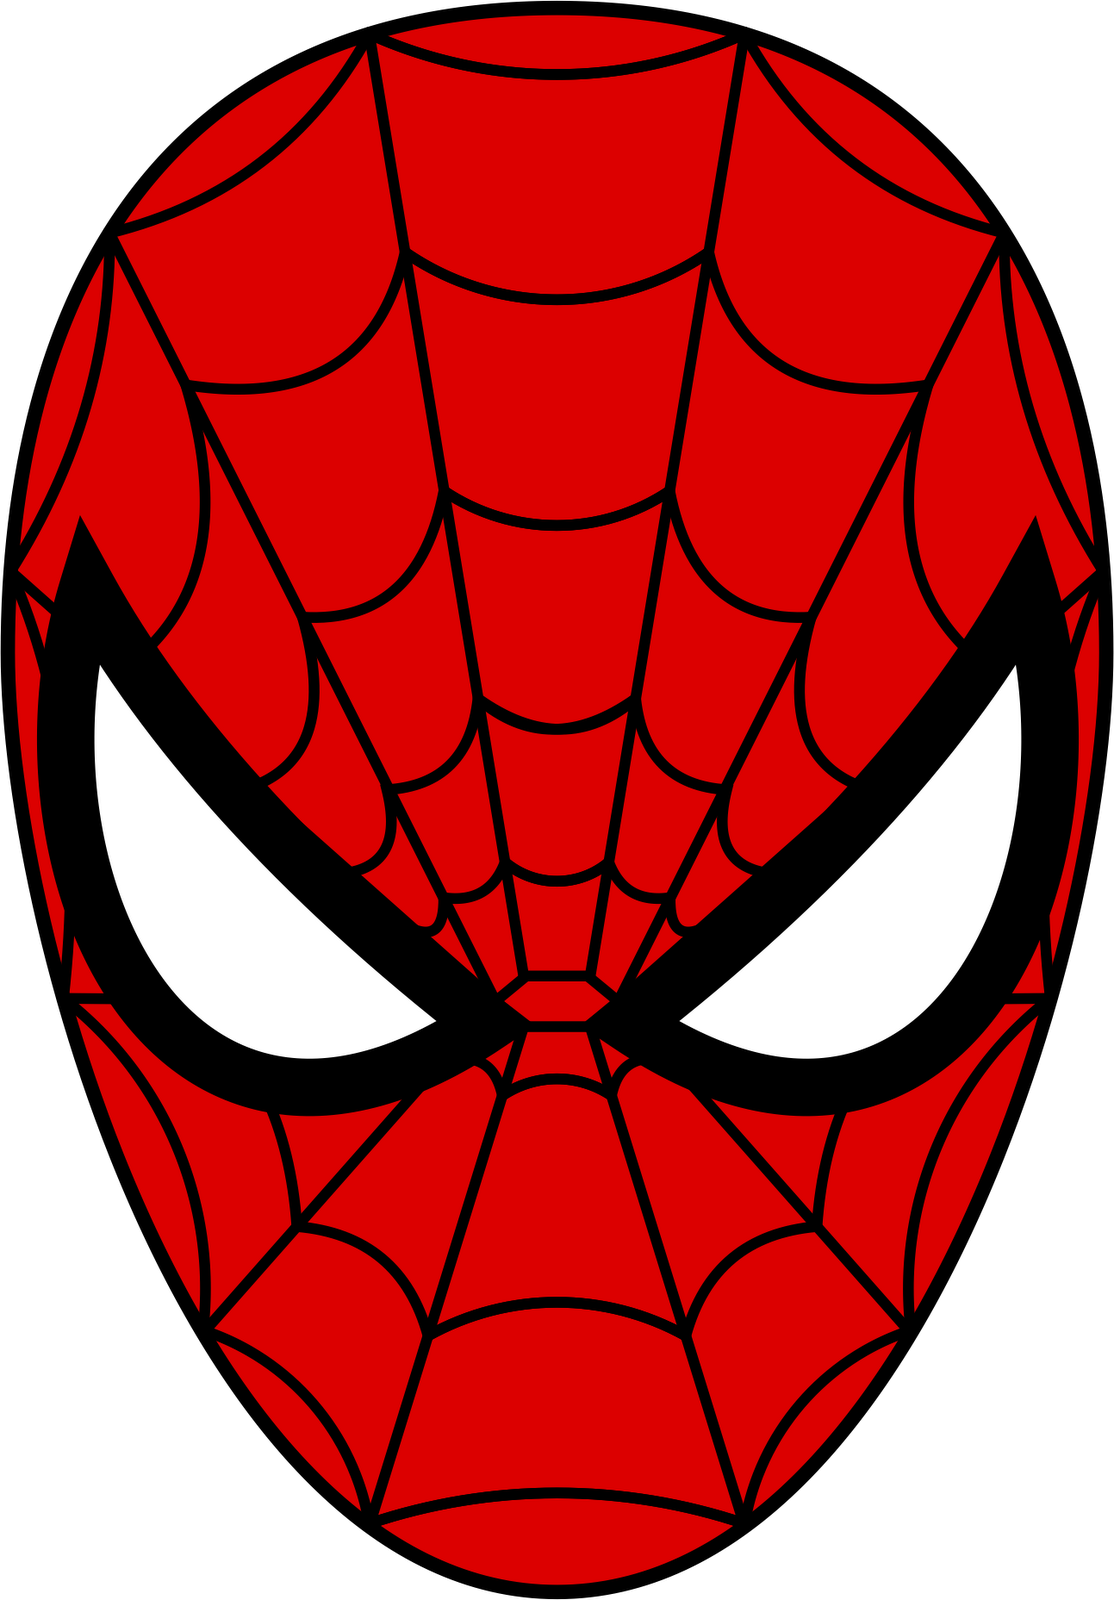 Spiderman face logo - photo#7